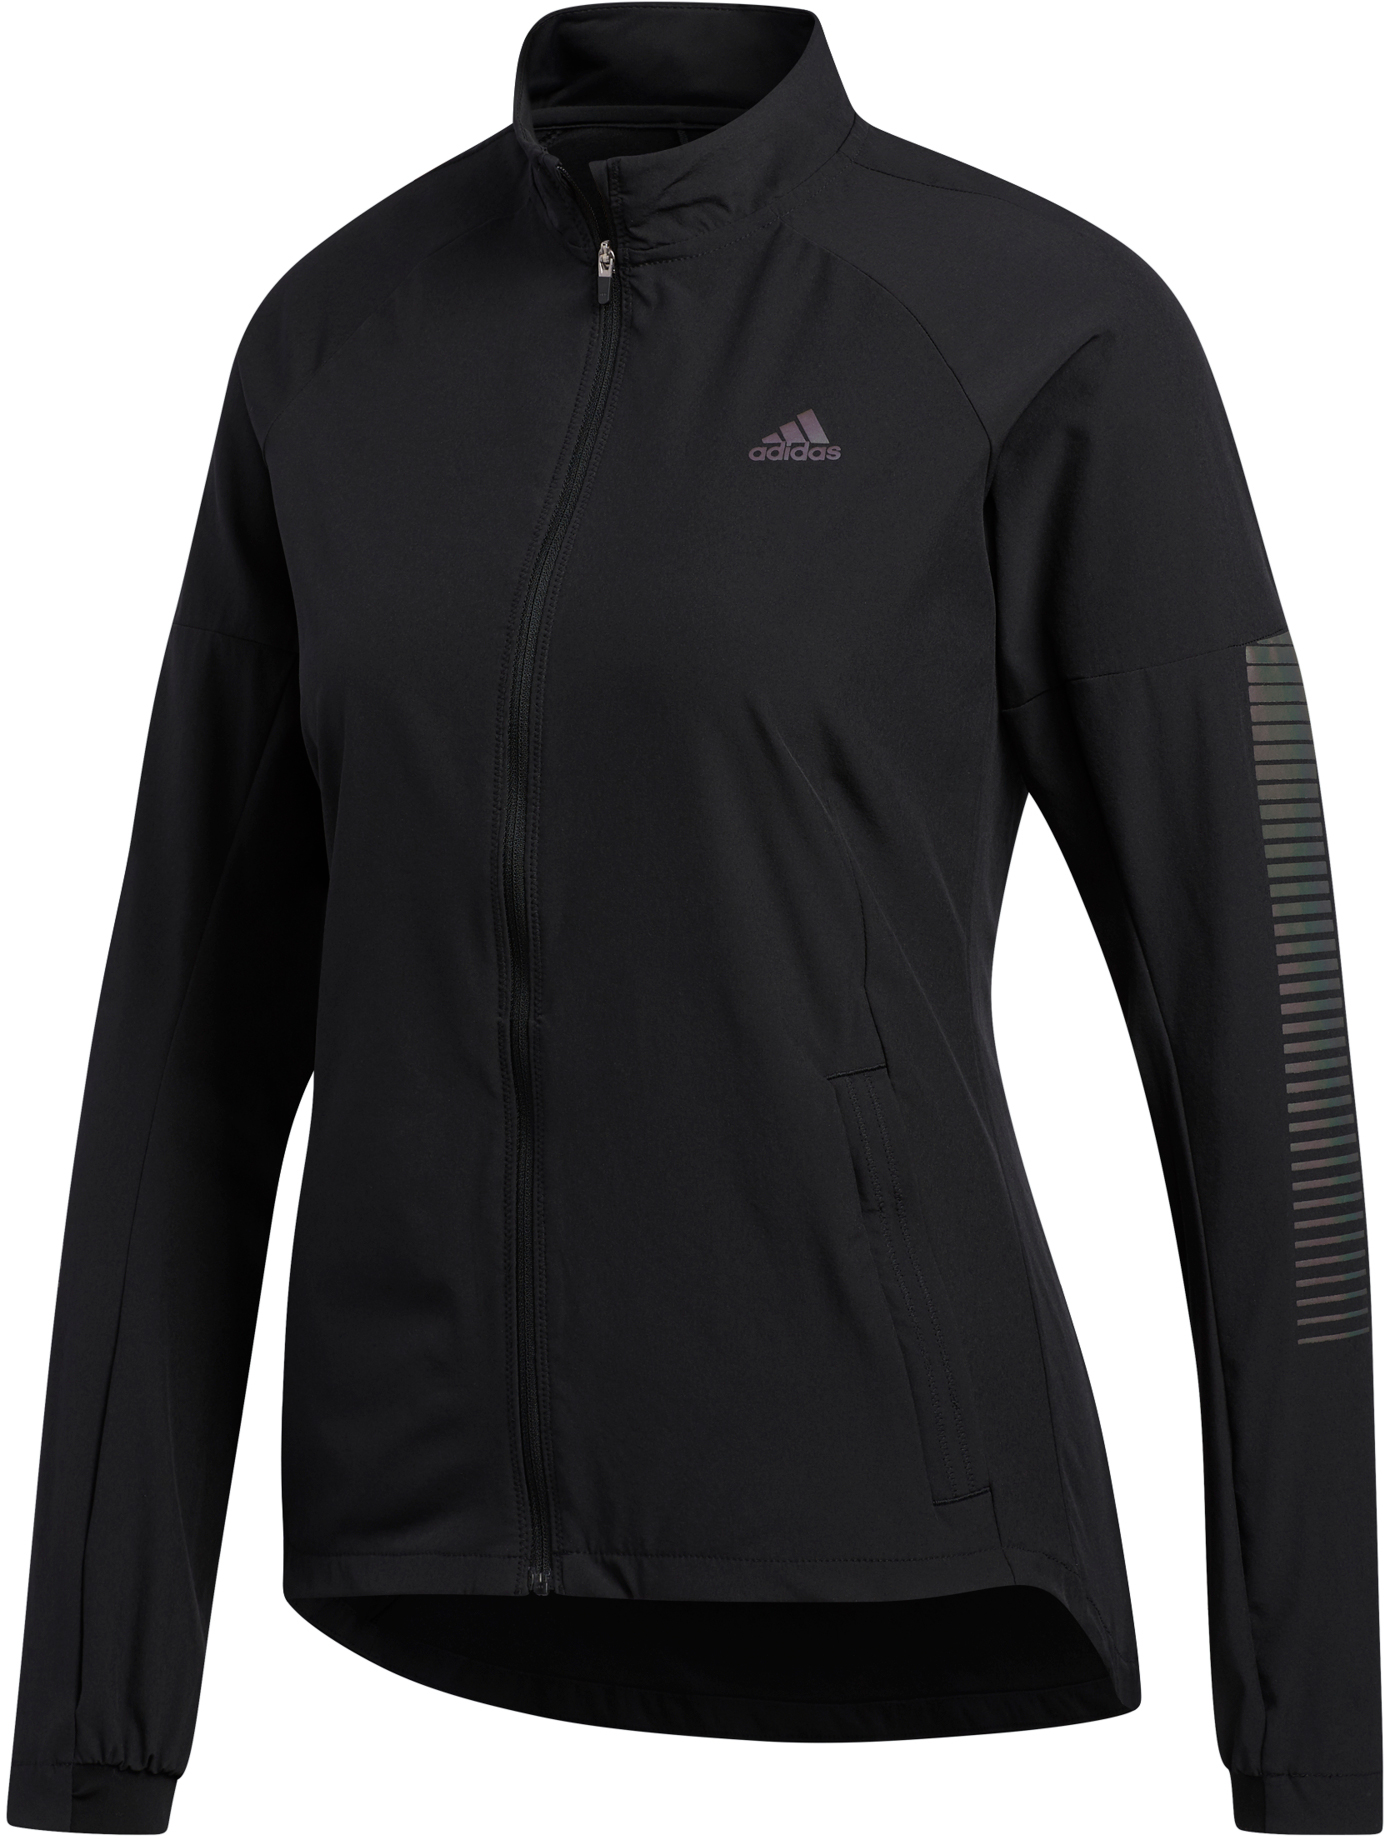 adidas Women's Rise Up N Run Jacket | Jackets